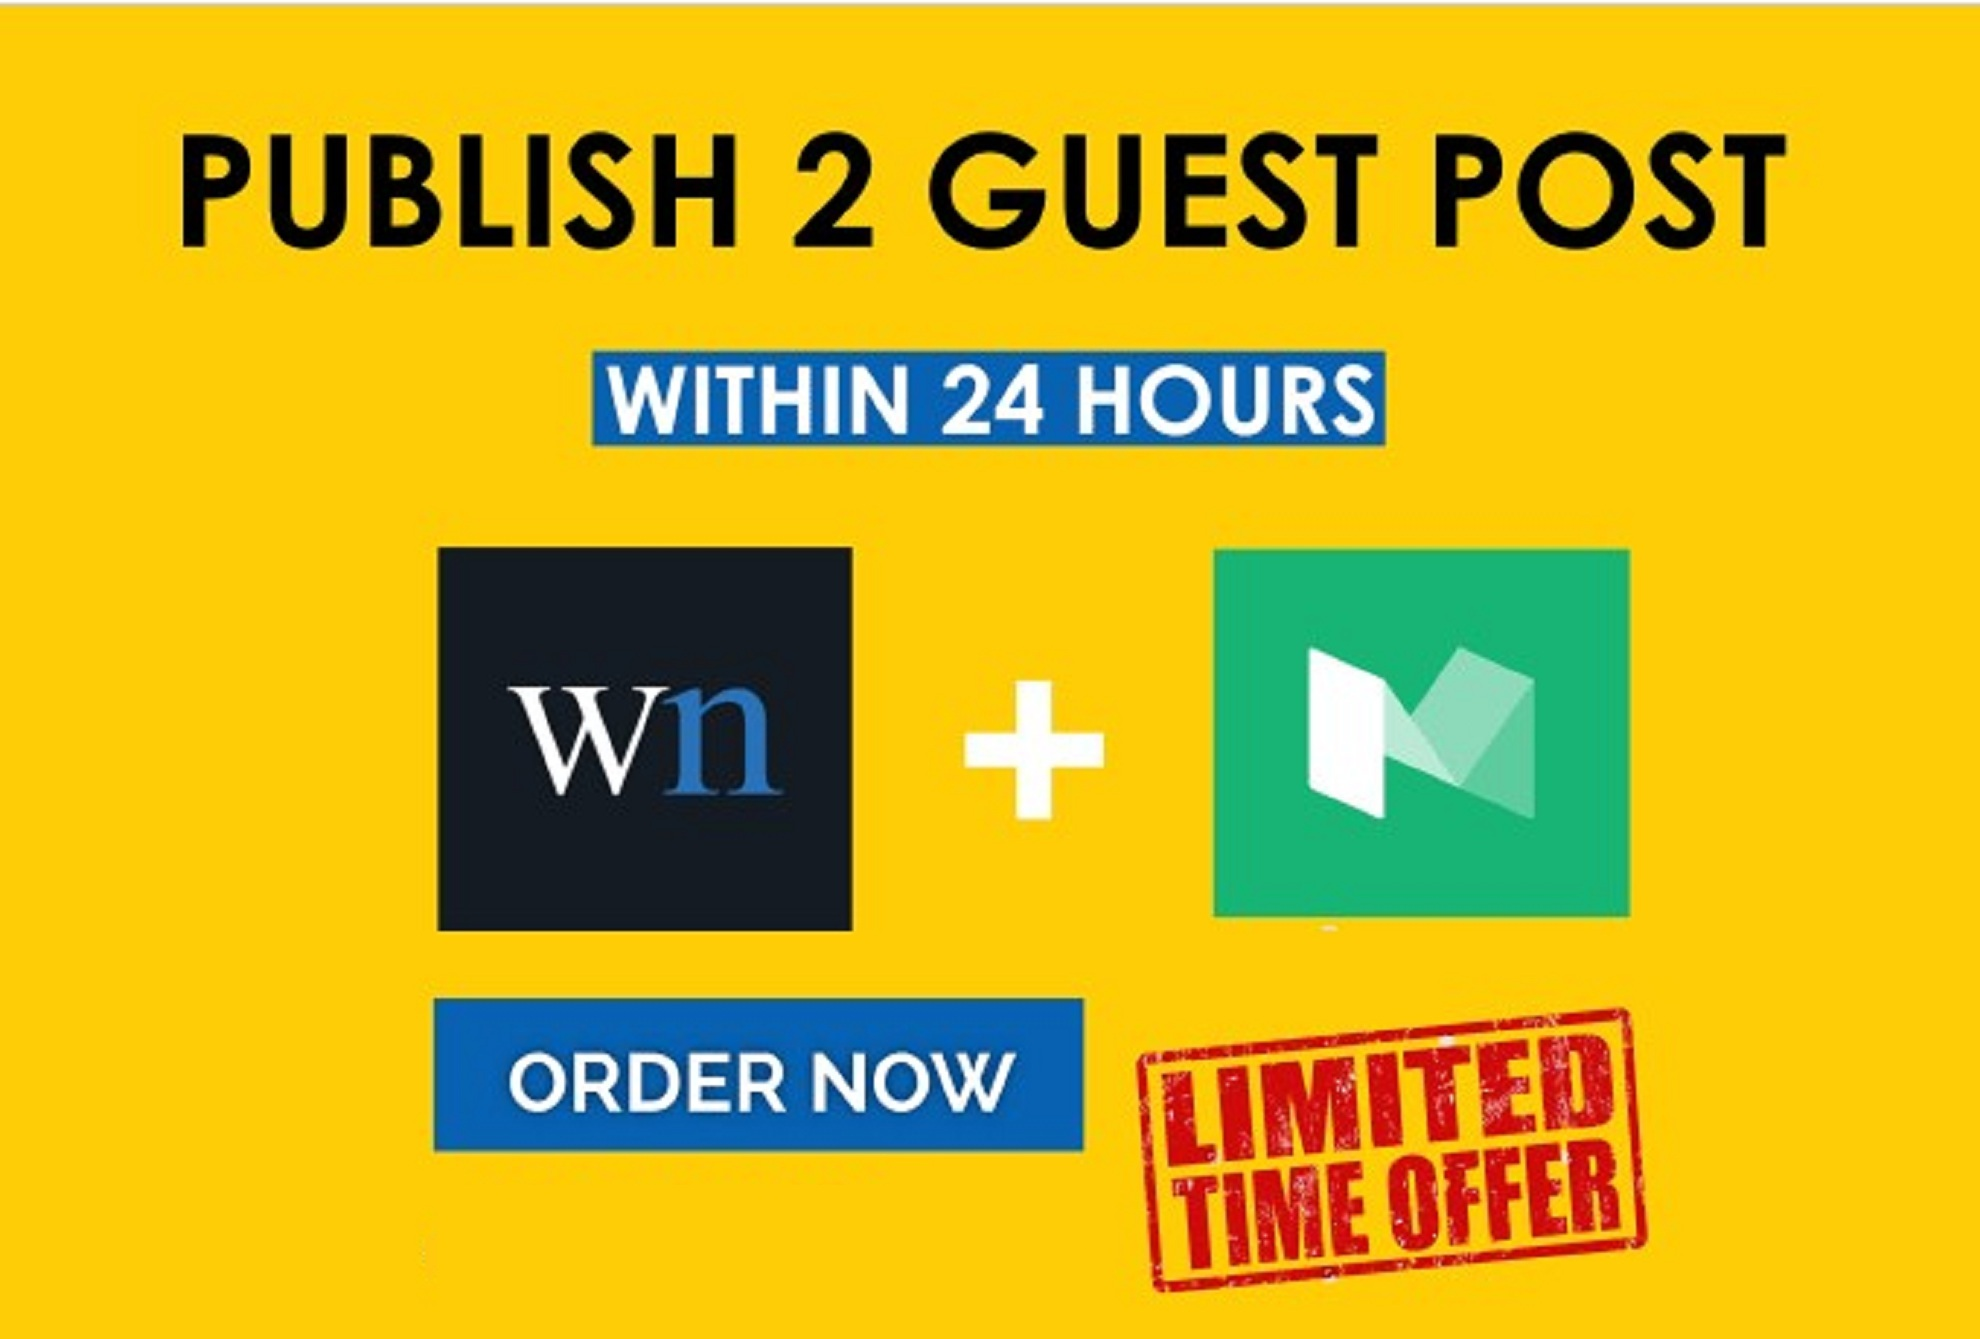 Do Guest Post On Wn And Medium